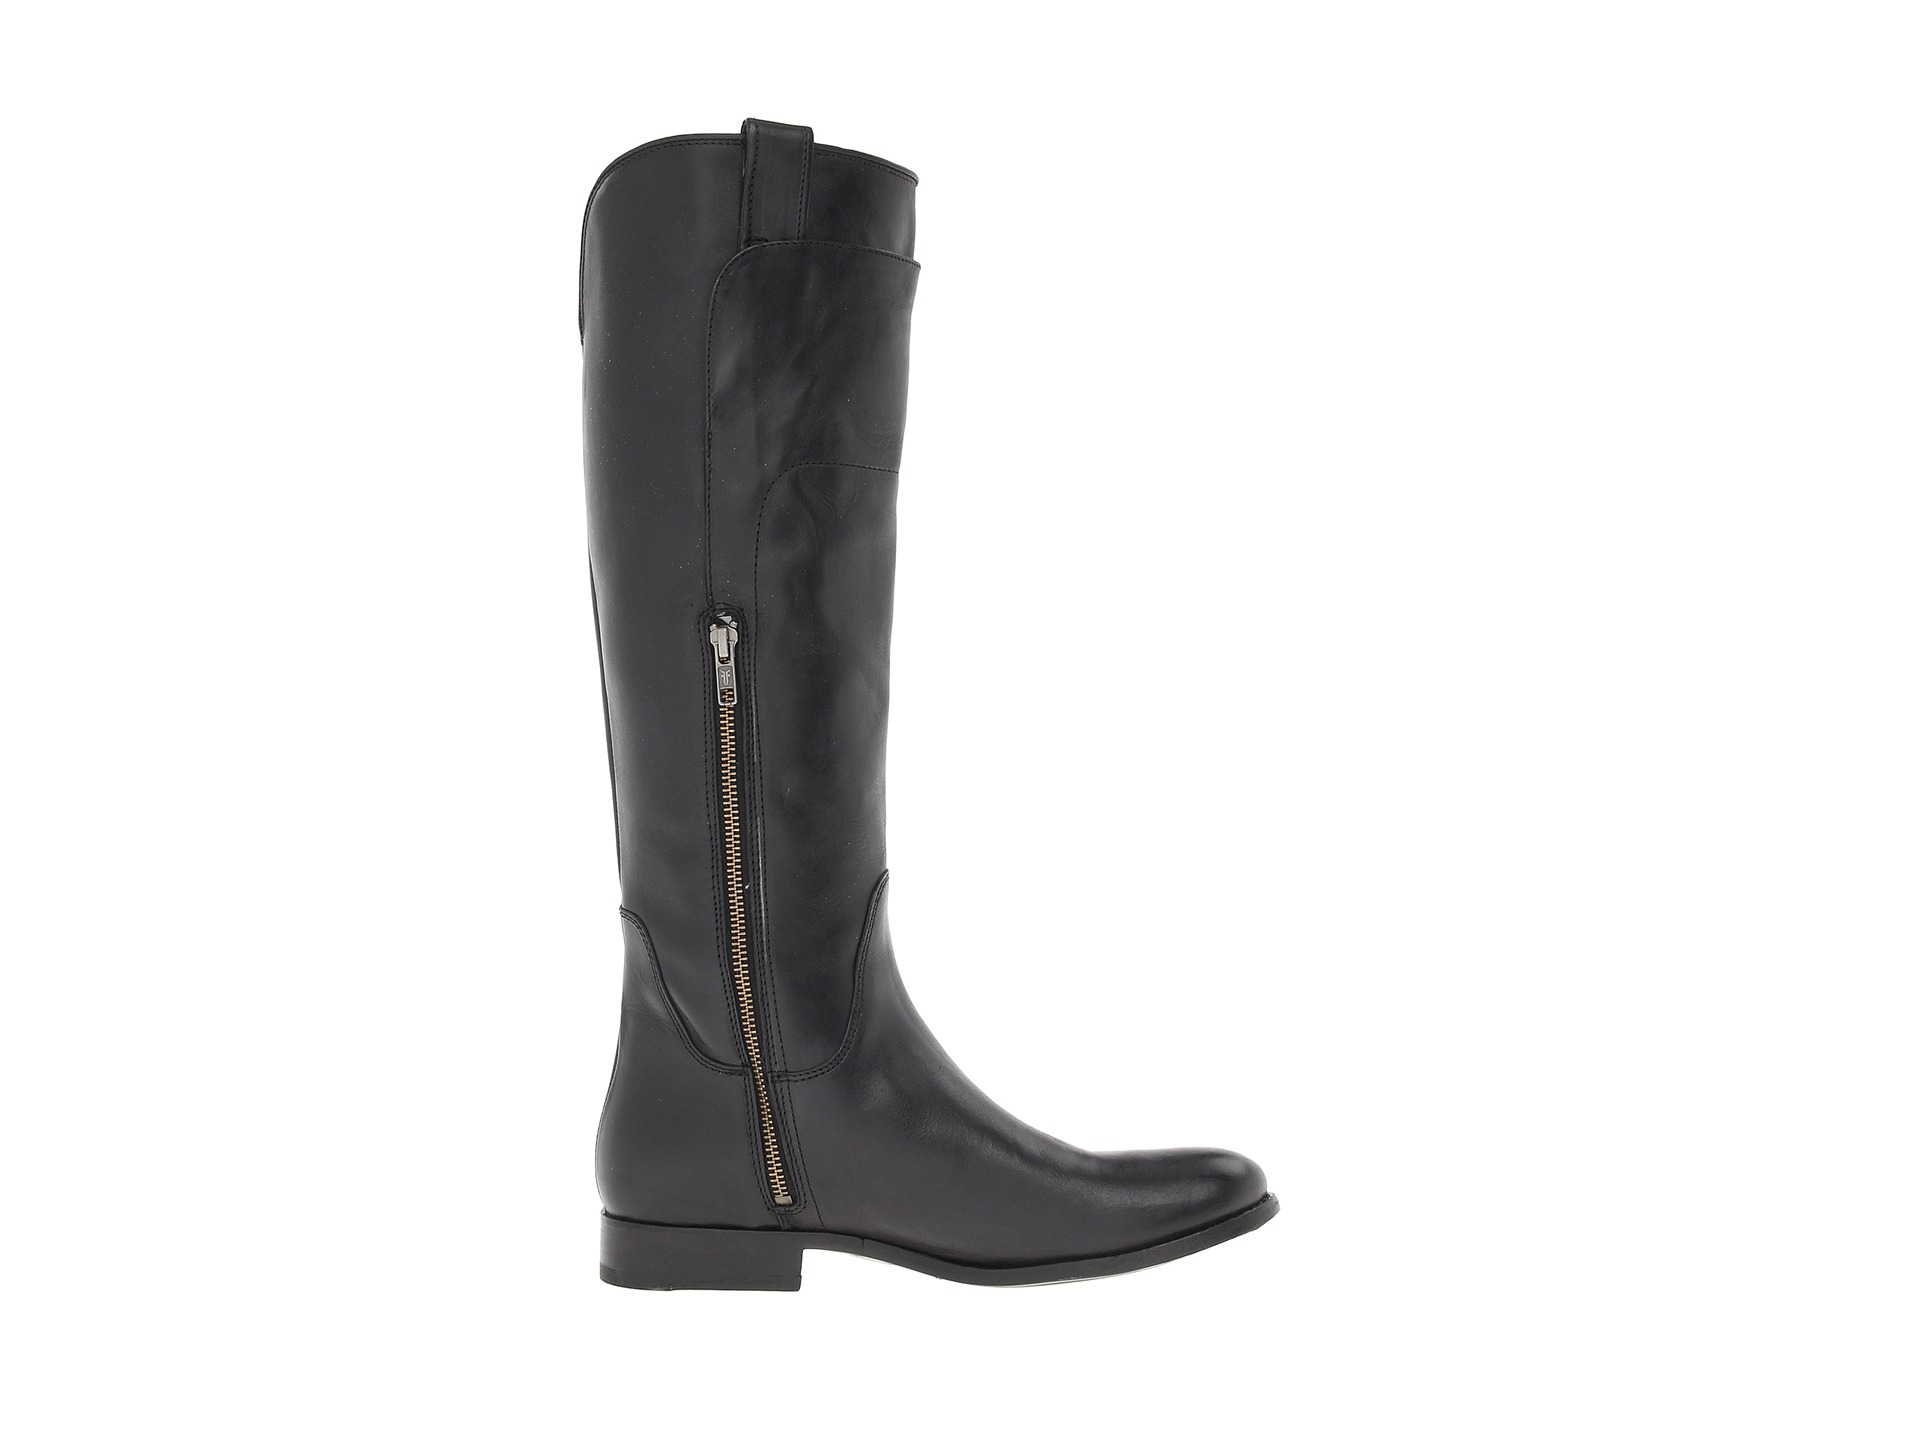 Frye Melissa Tall Riding - Zappos.com Free Shipping BOTH Ways